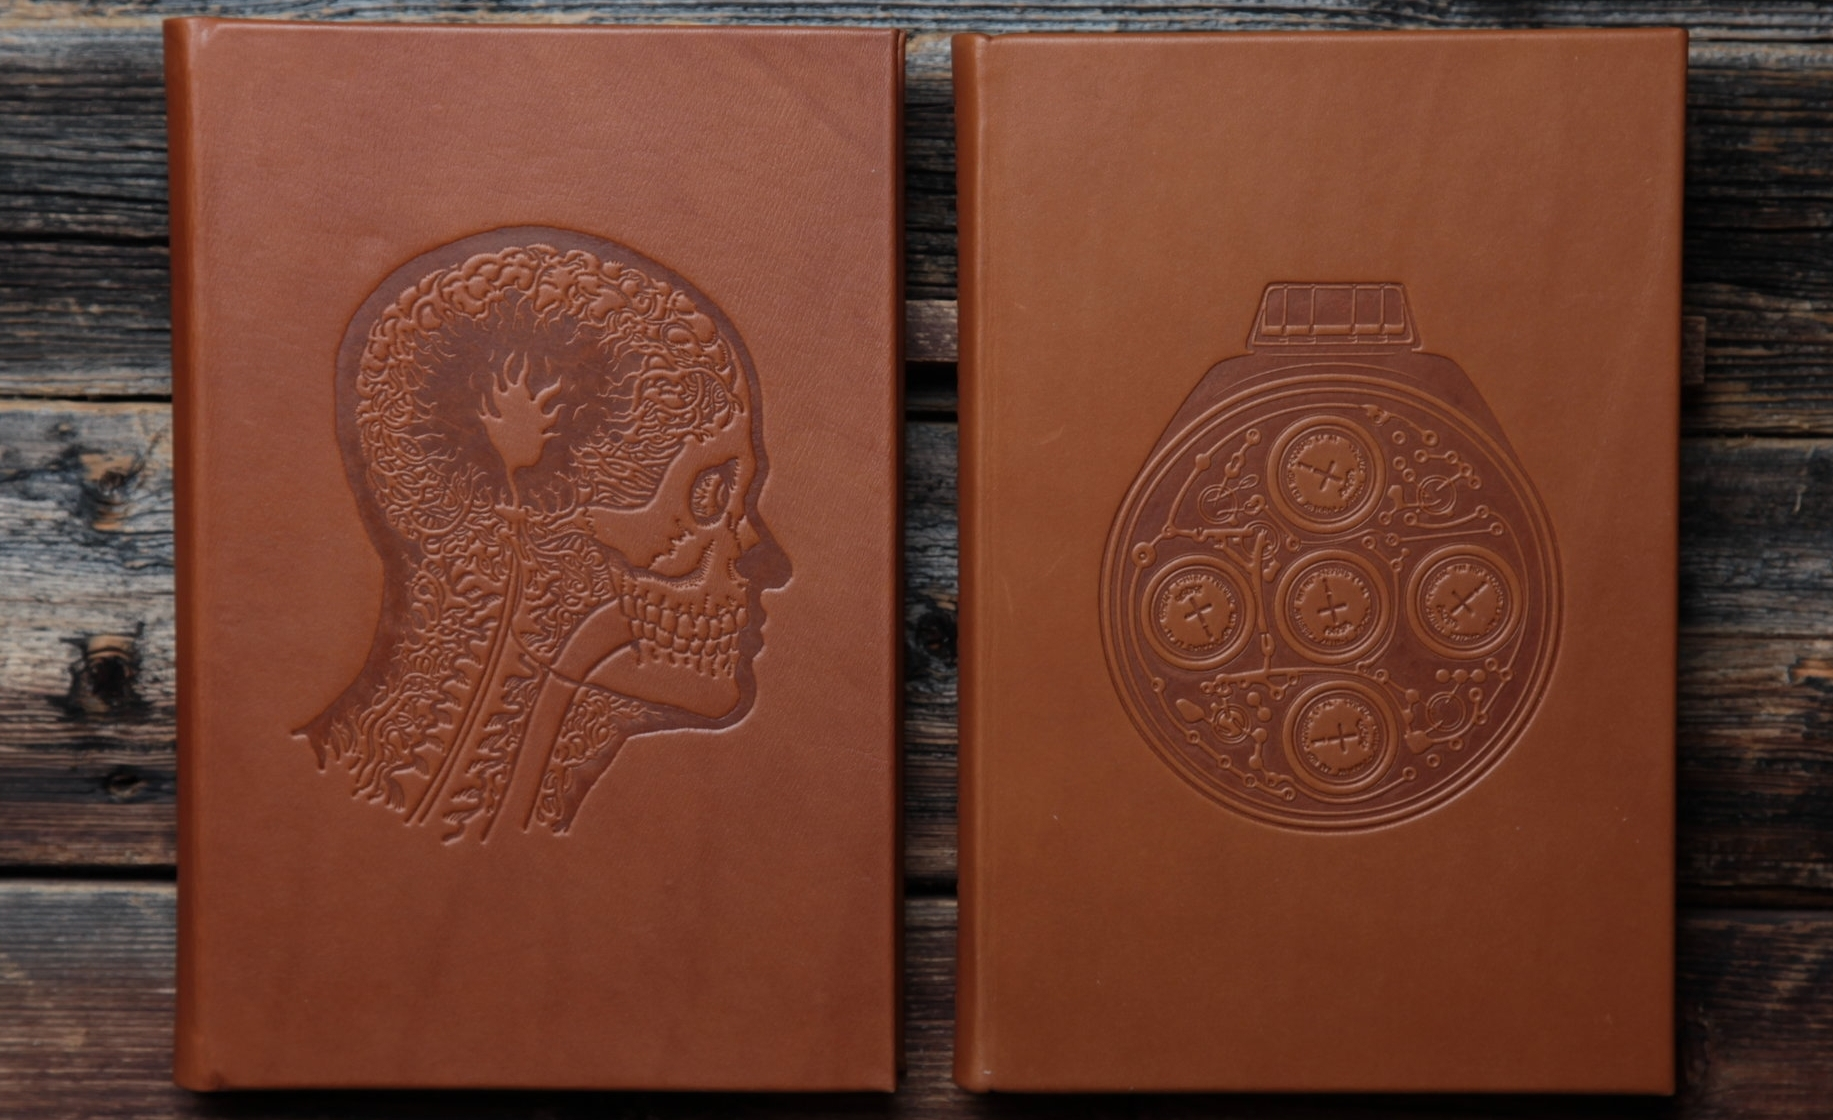 Cappelens Forslag's Conversational Lexicon, Vol. I (left) and Vol. II, calf skin hardcover versions.